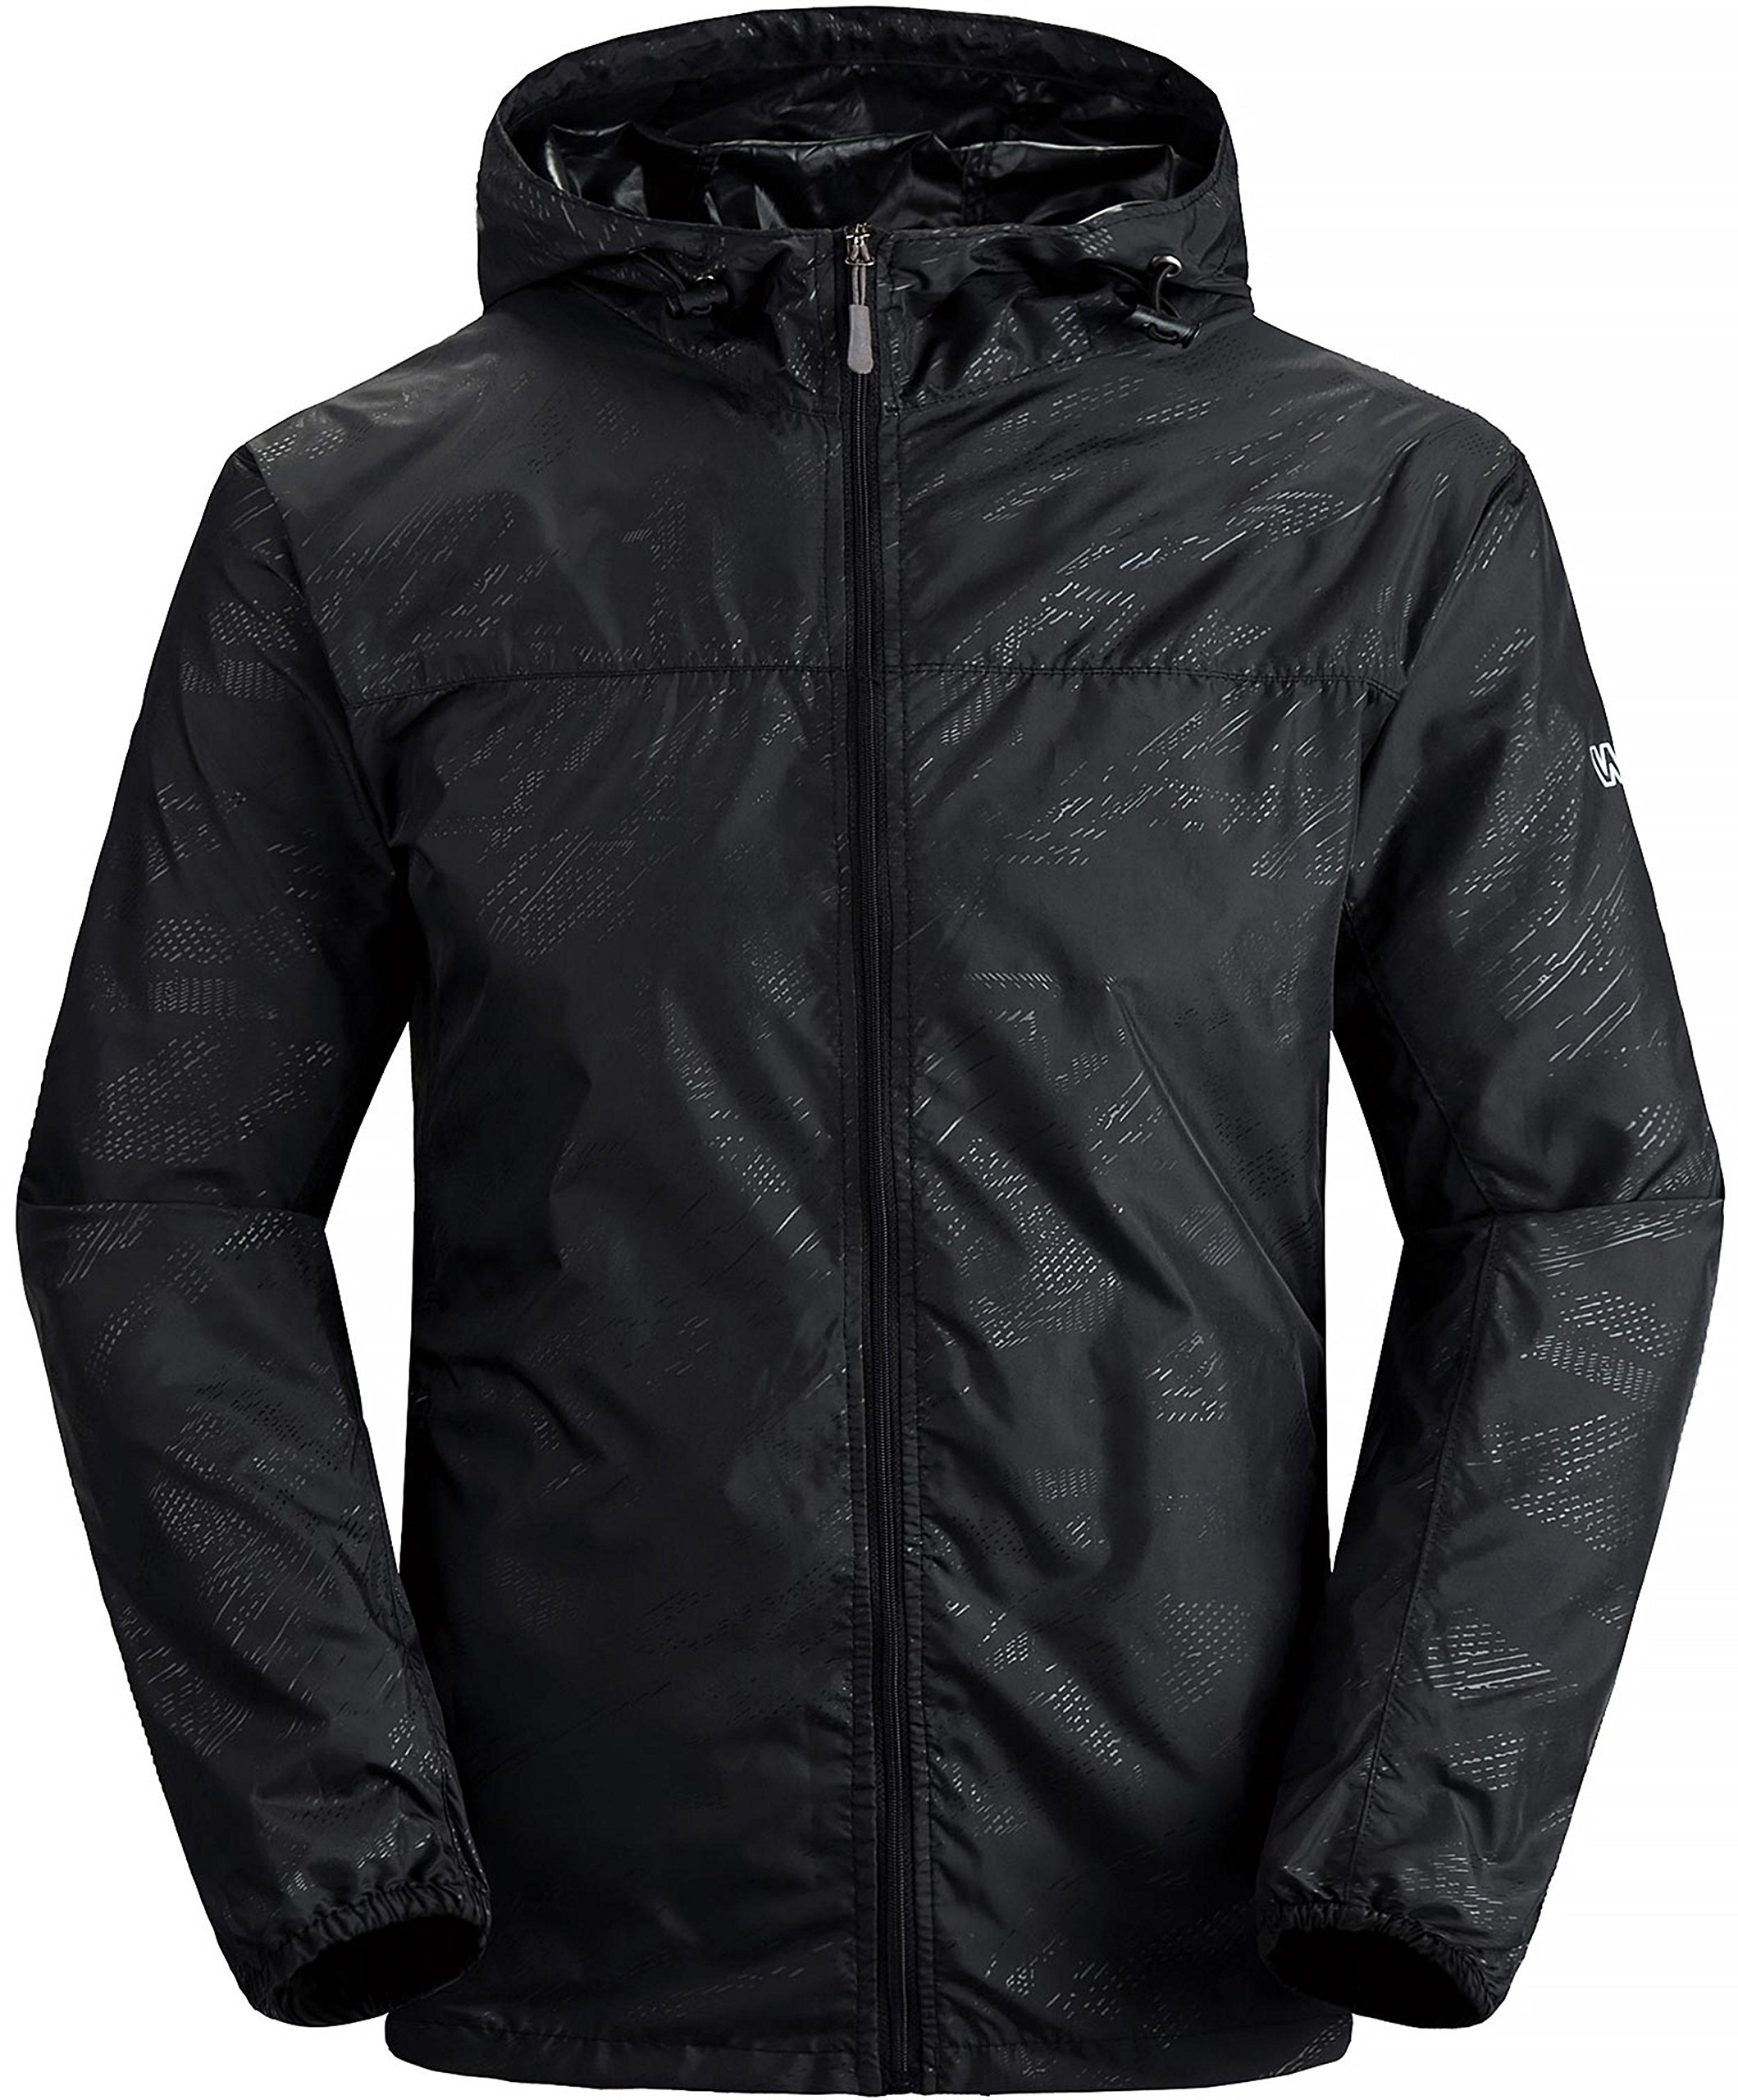 Wantdo Men's Lightweight Windproof Jacket UV Protect Quick Dry packable Skin Coat Black US L by Wantdo